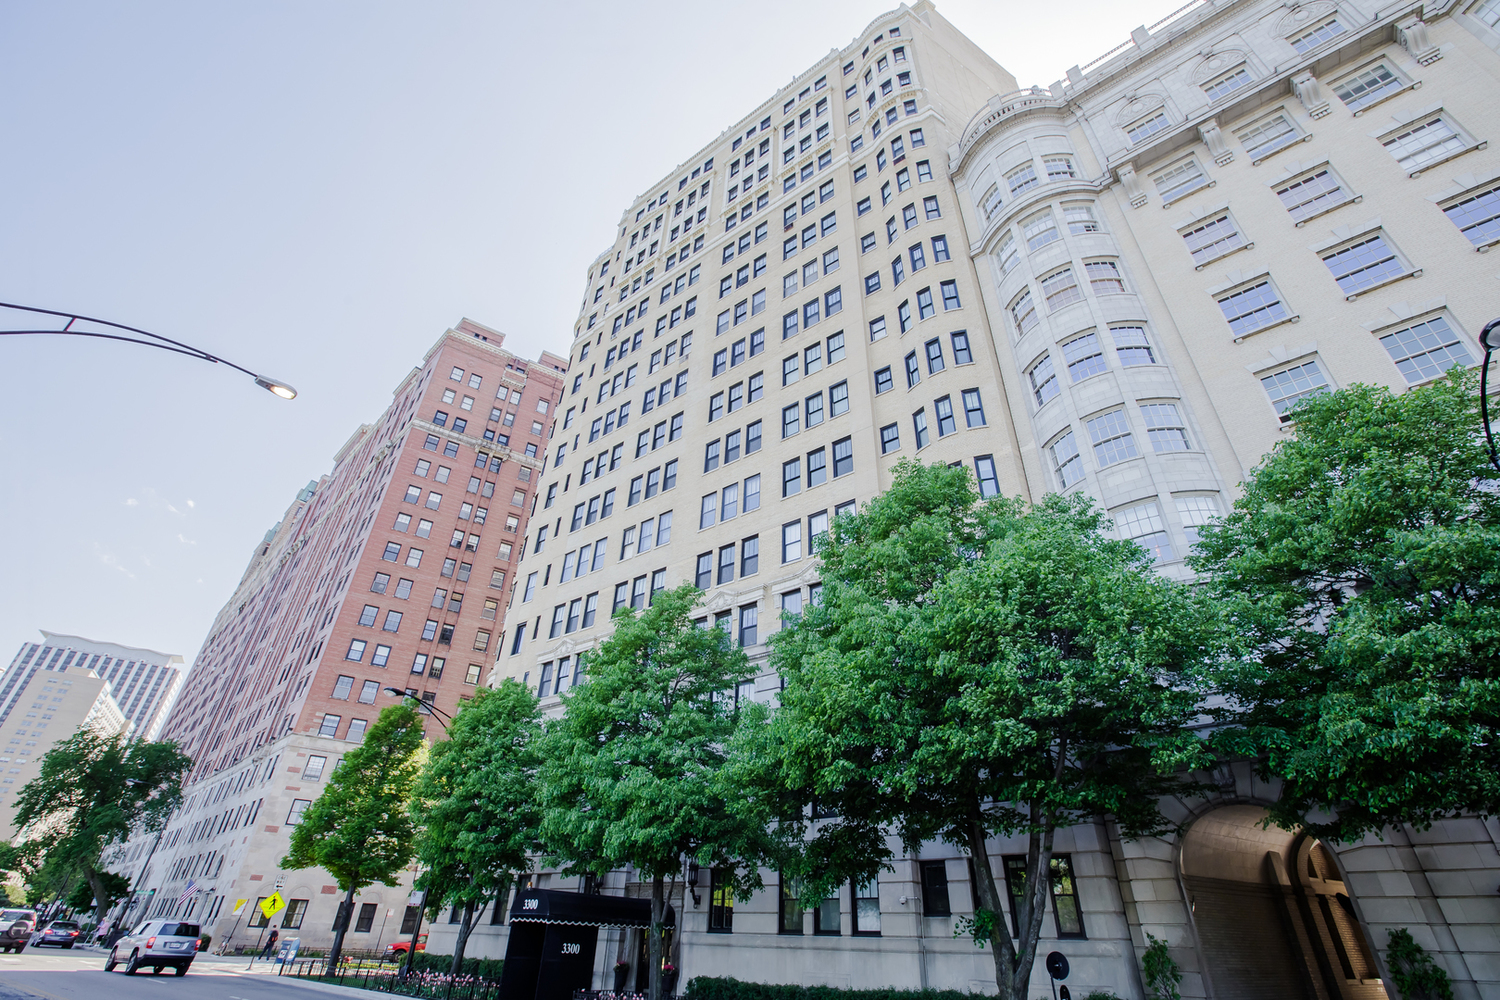 3300 North Lake Shore Drive, Unit 4E Chicago, IL 60657